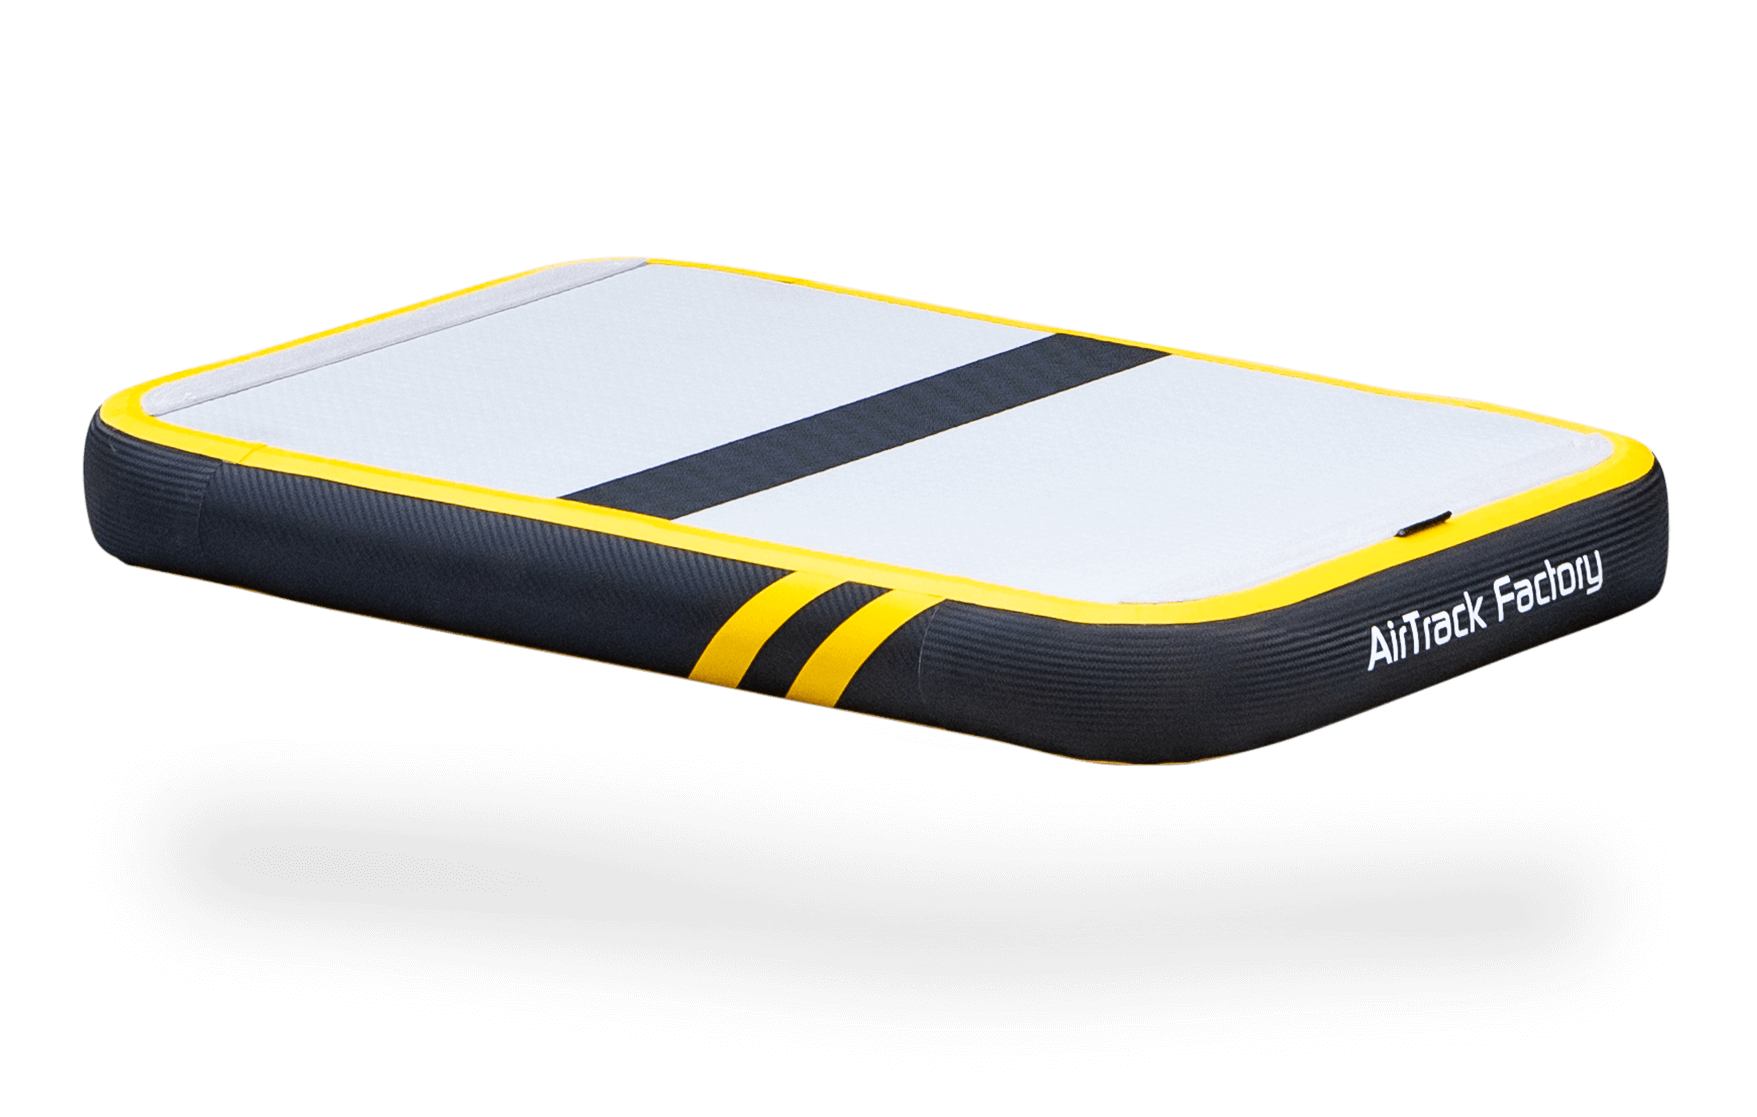 AirTrack Factory AirBoard Spark